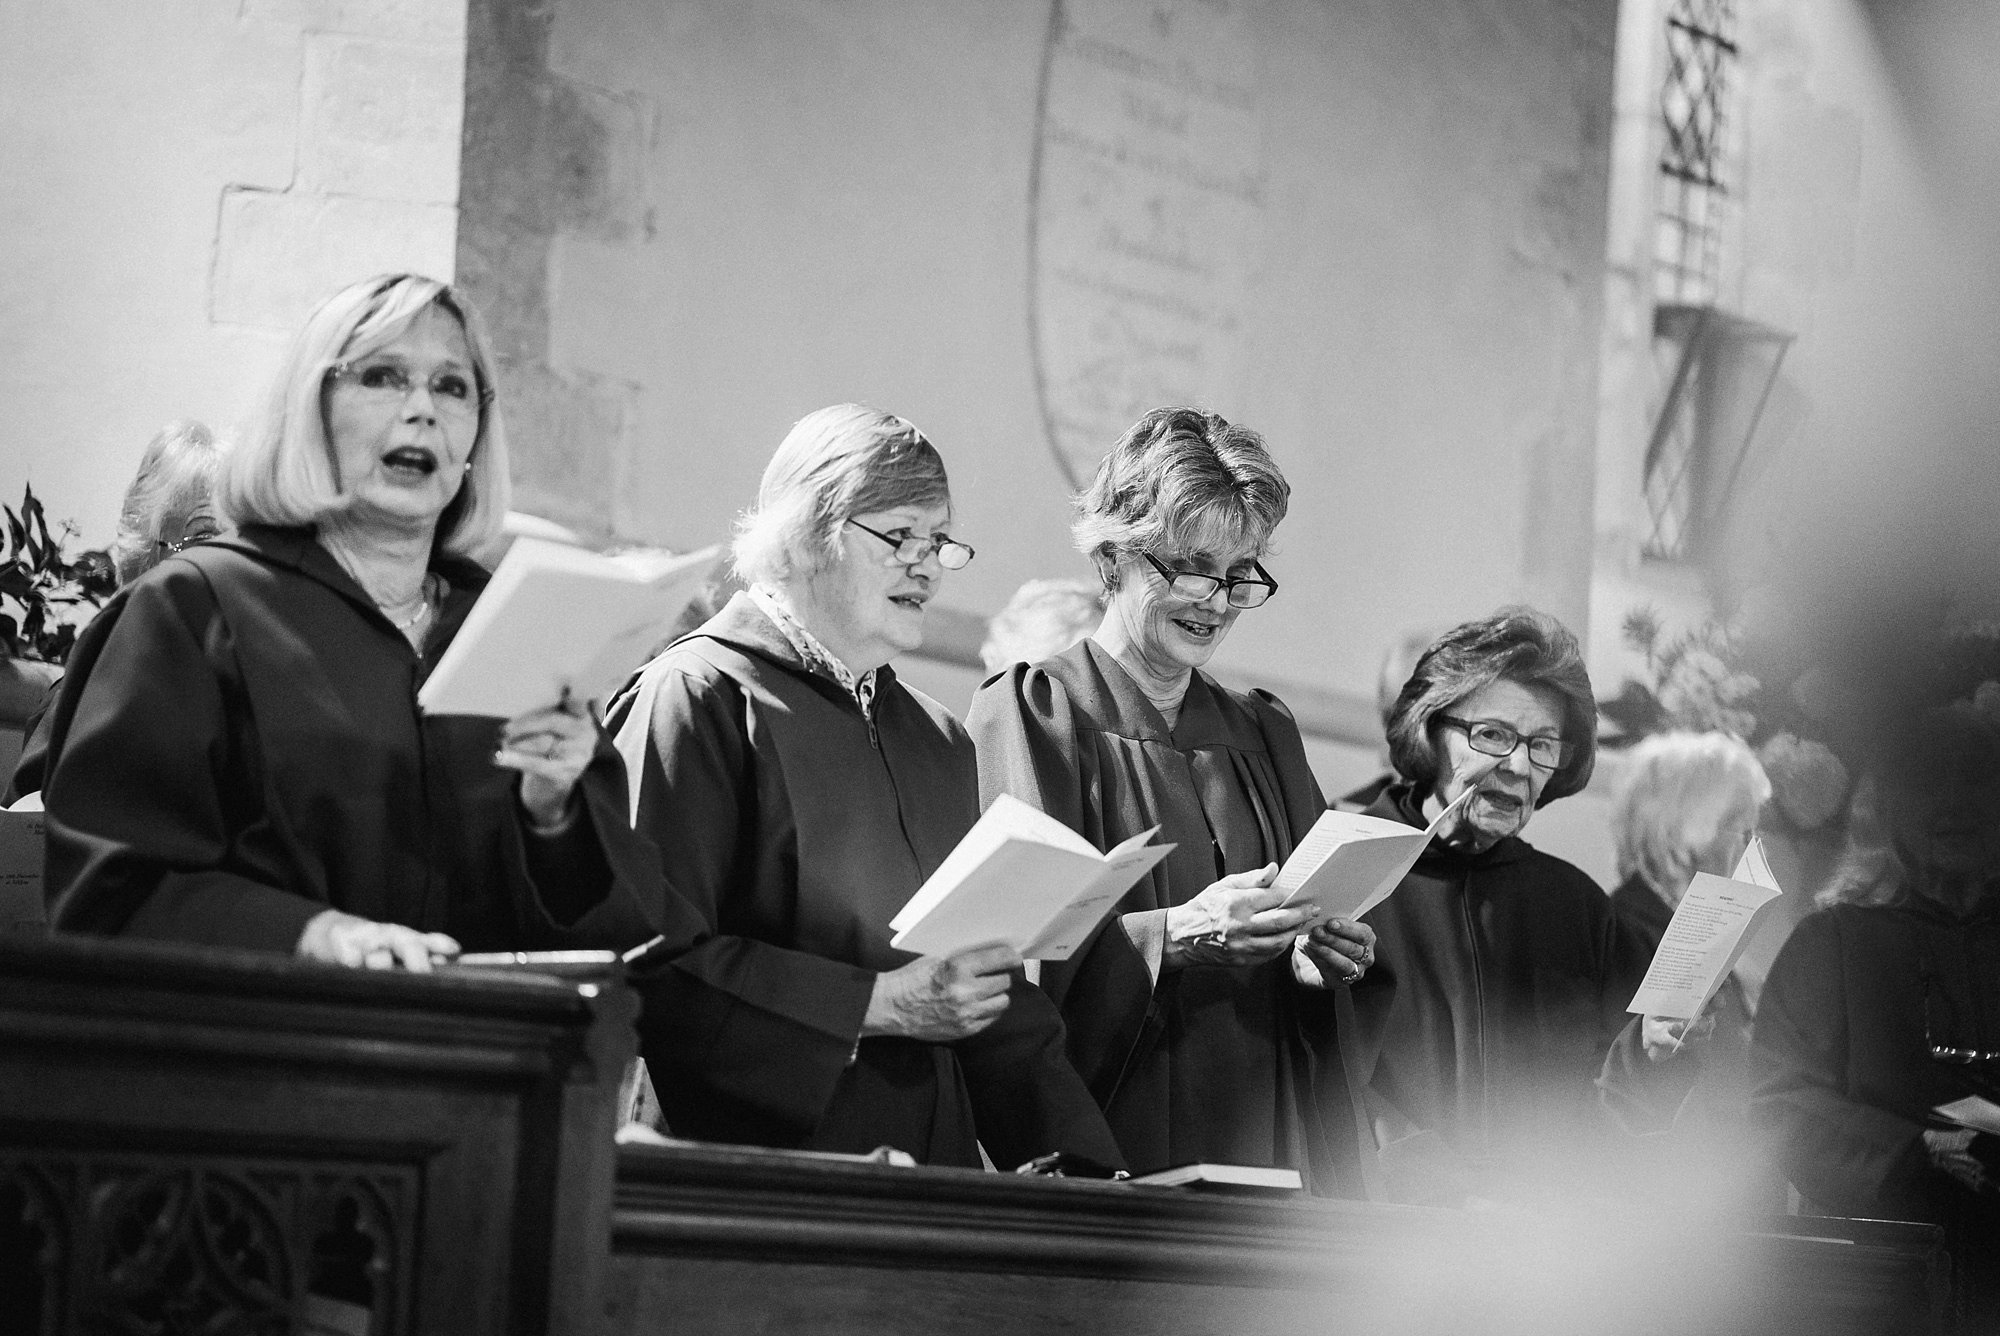 the choir sings during the wedding ceremony